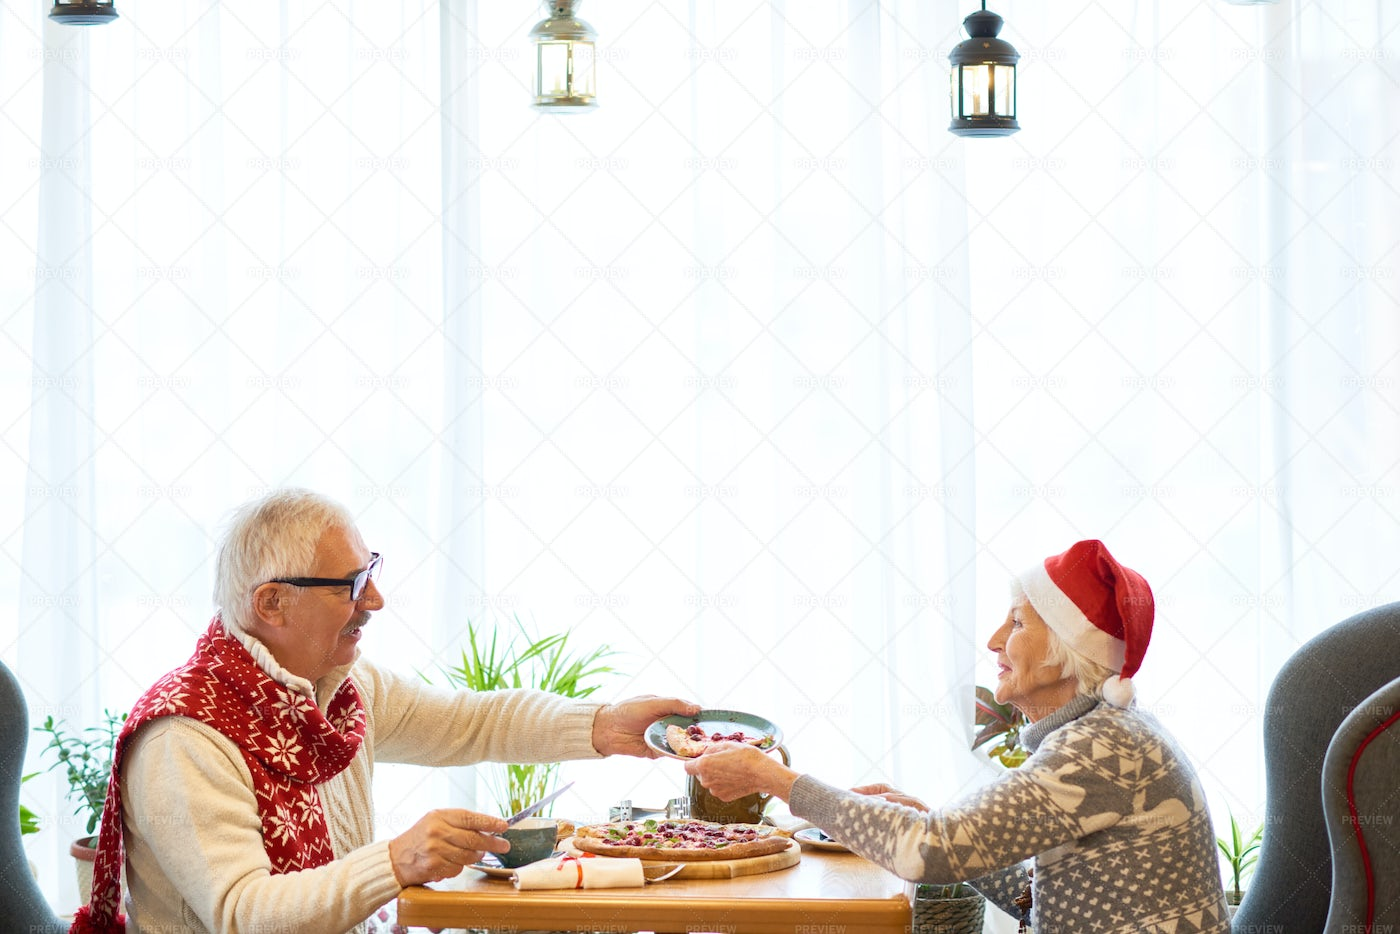 Senior Couple Dining Together On...: Stock Photos